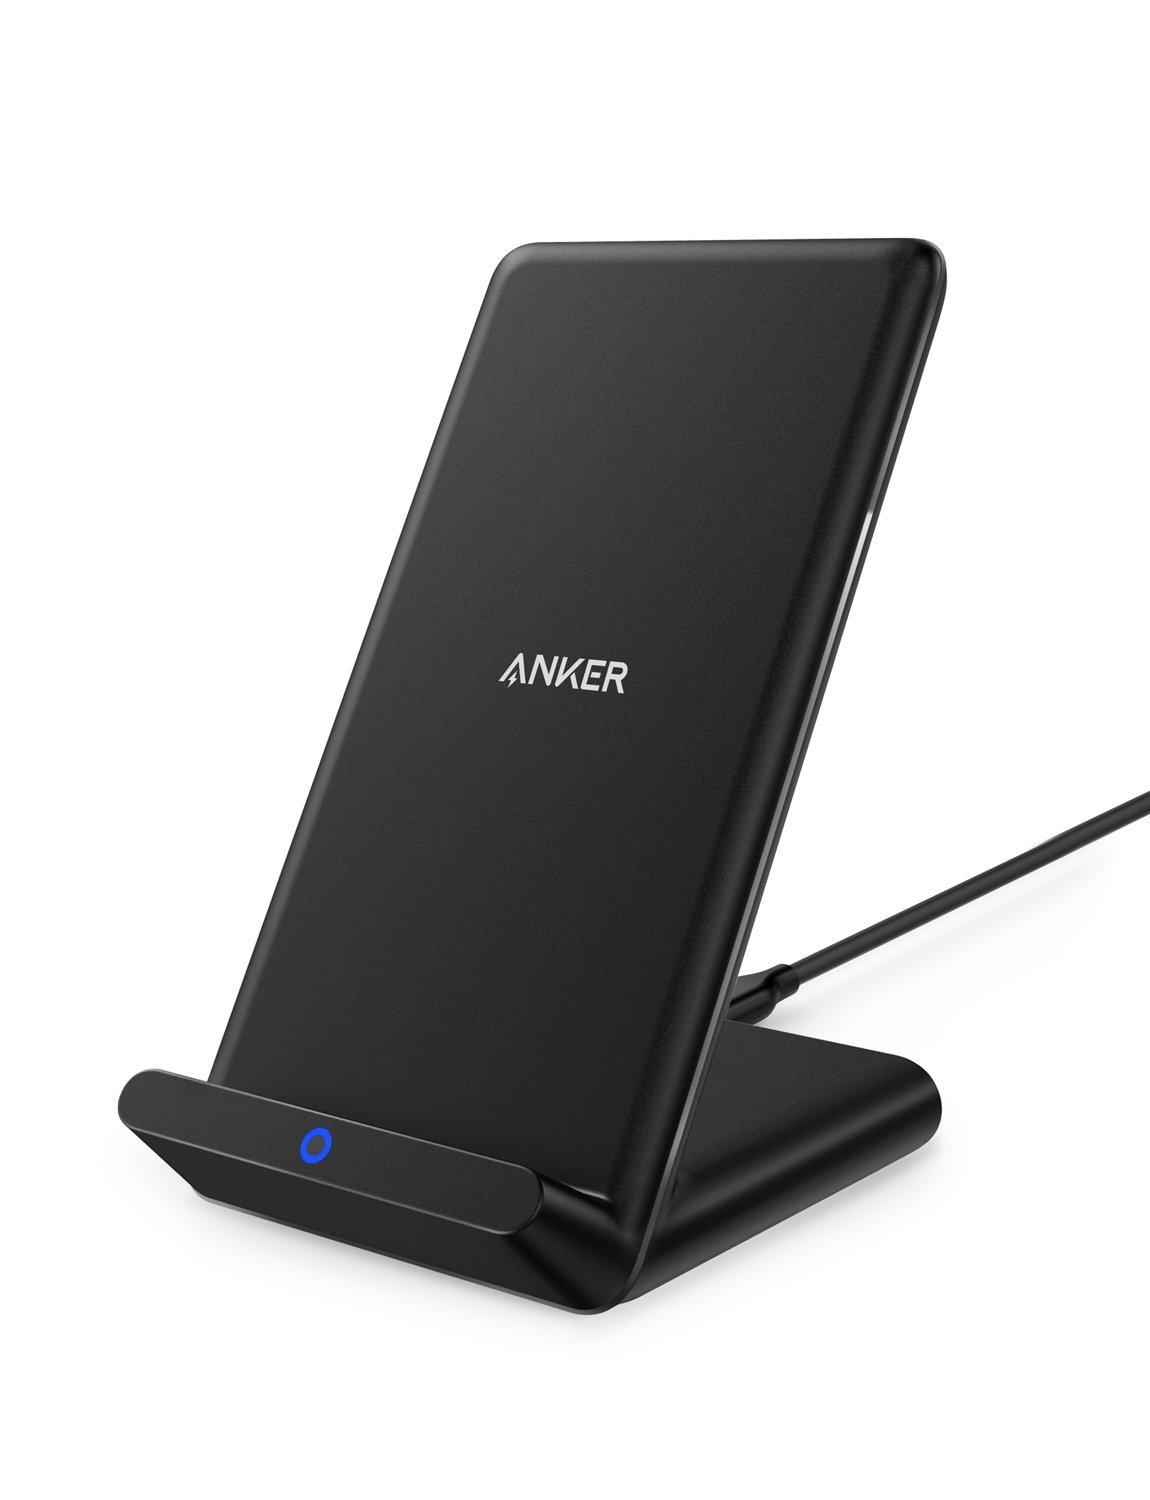 アマゾンでAnker PowerPort Wireless 5 Standが2999円⇒2399円。